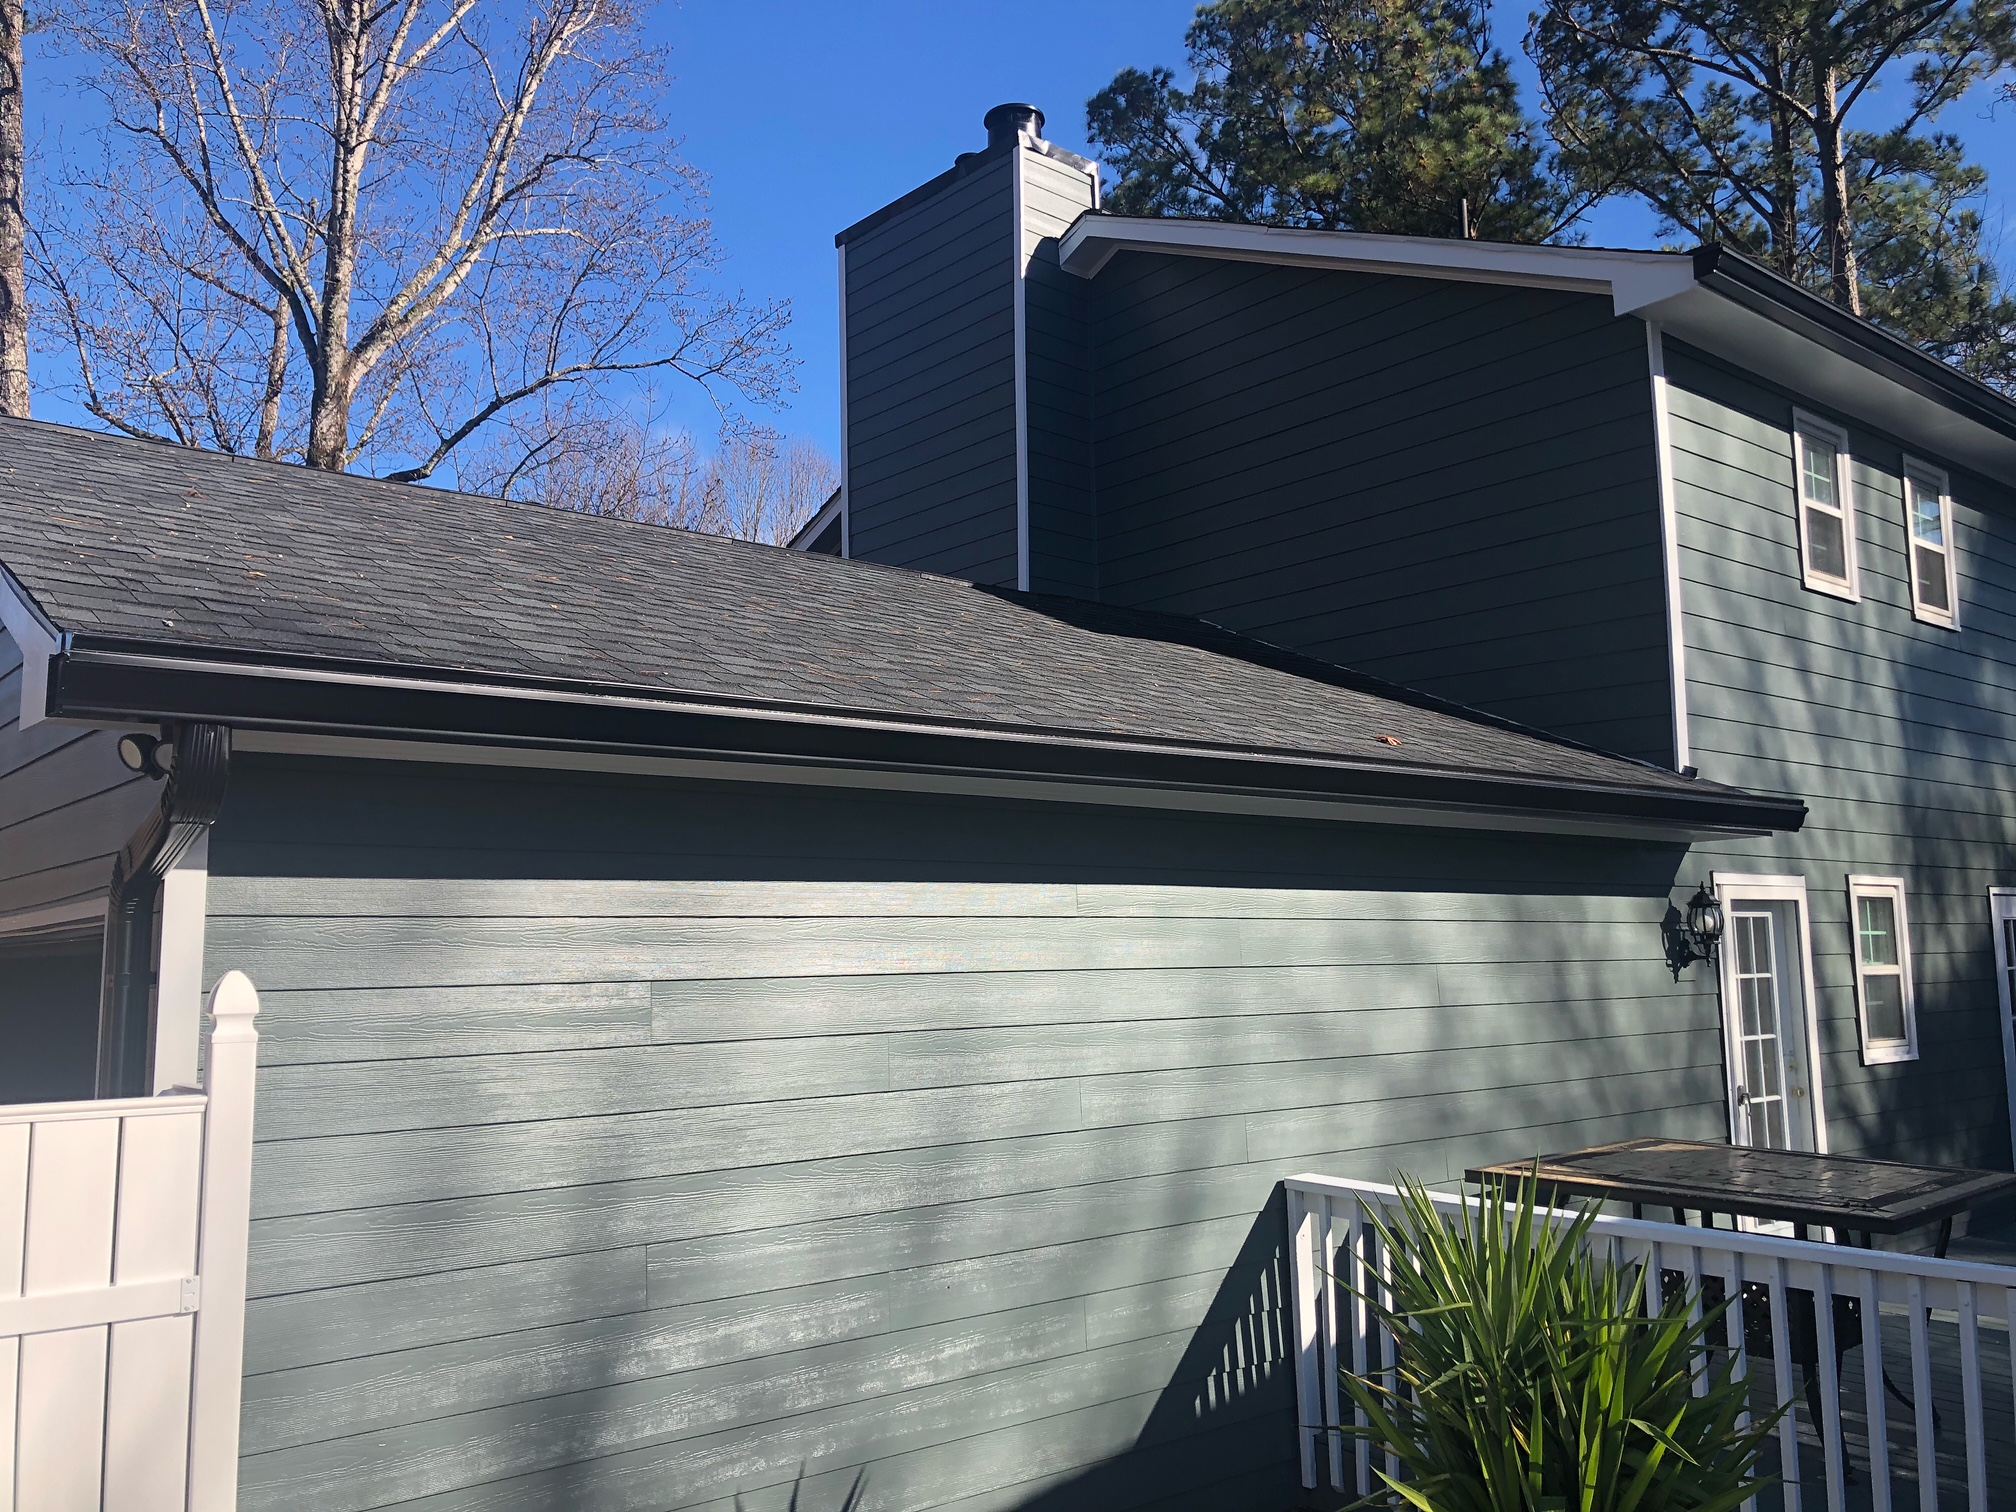 Siding replacement with paint